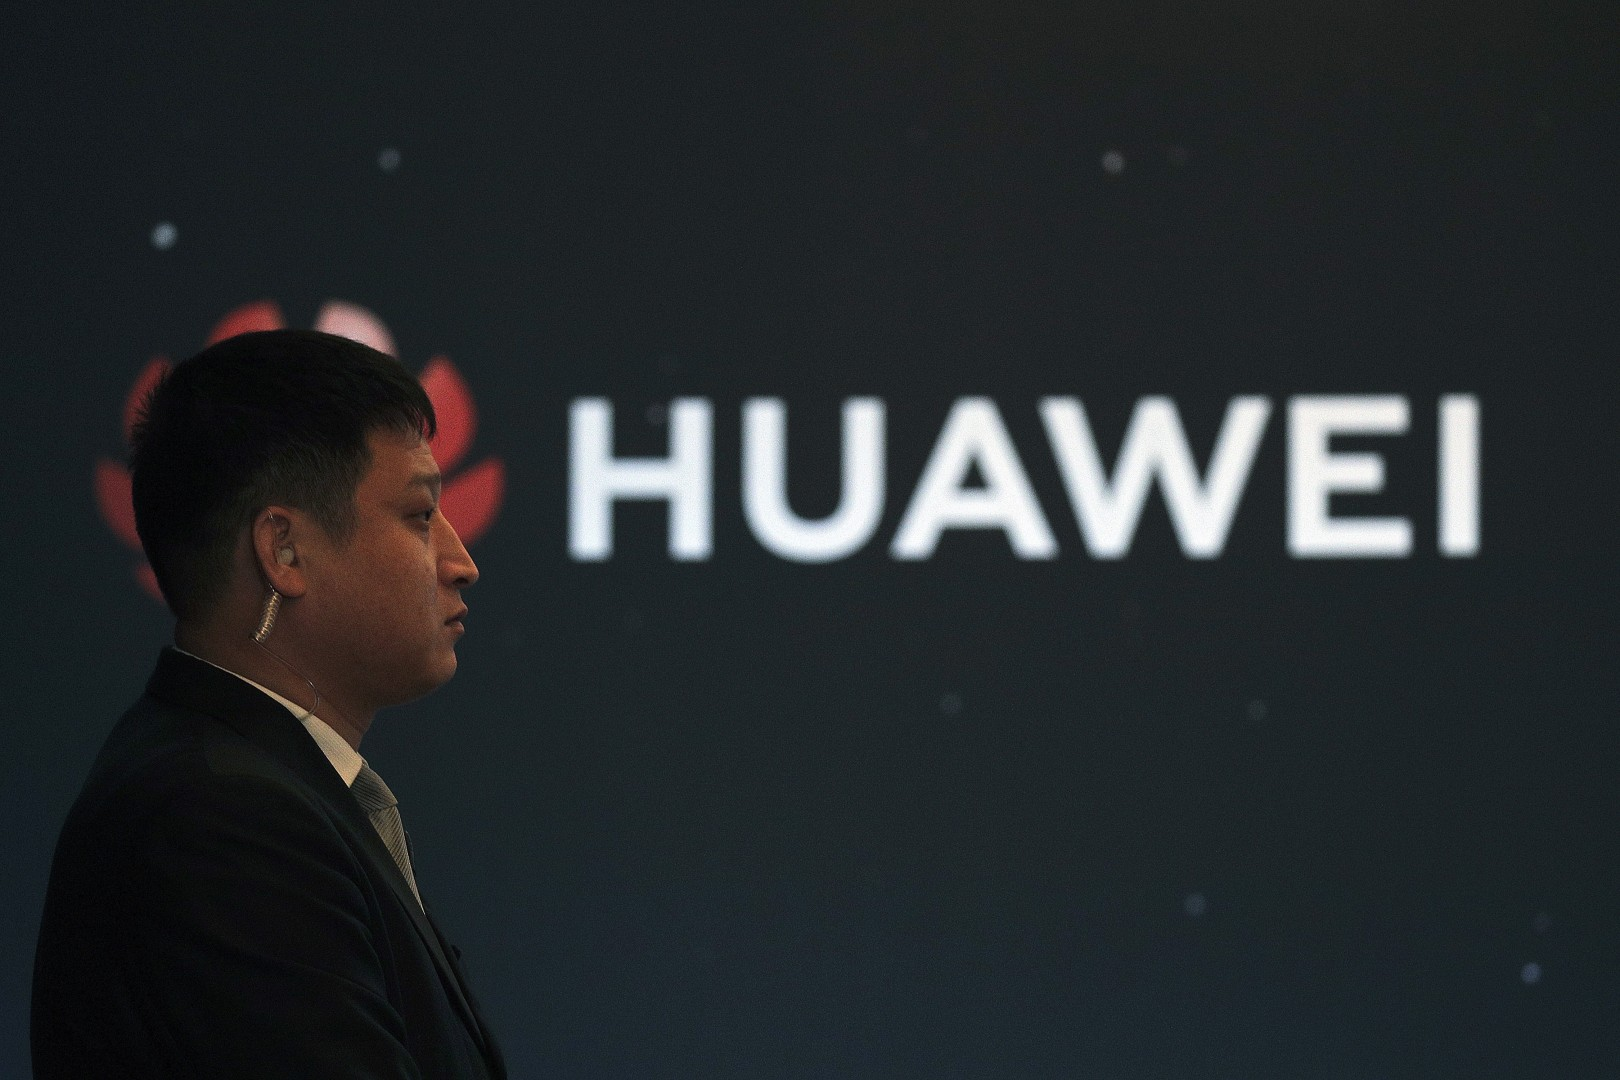 US indictment against Huawei shows FBI interviewed founder